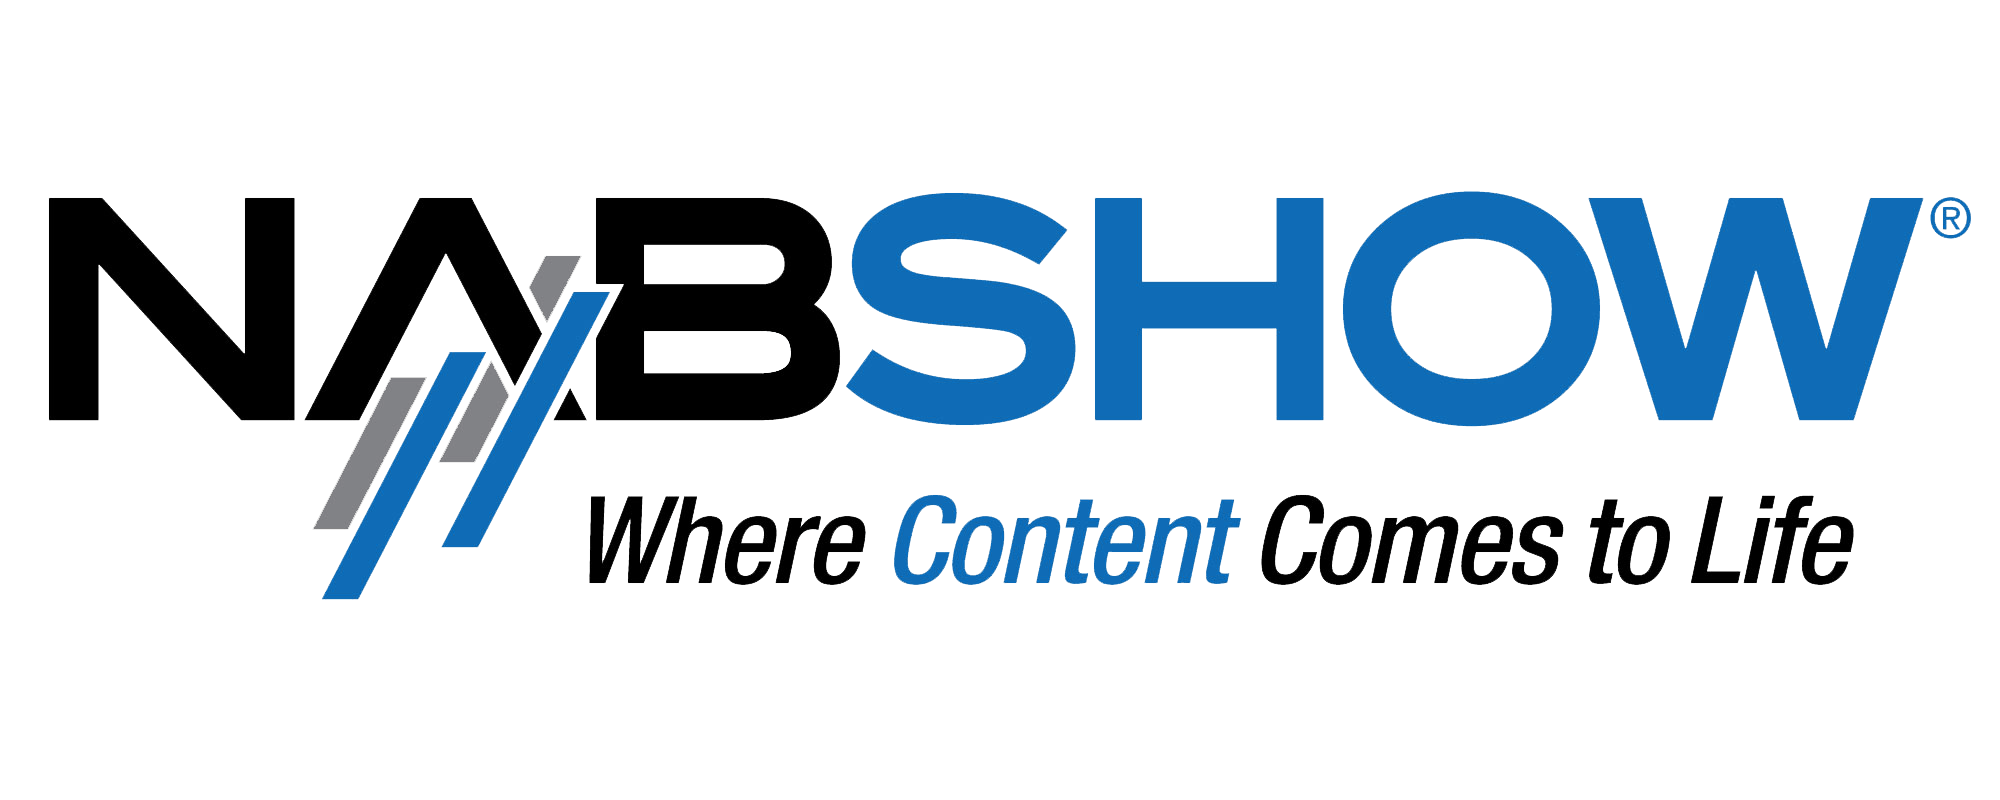 nab-show-logo-transparency-1.png